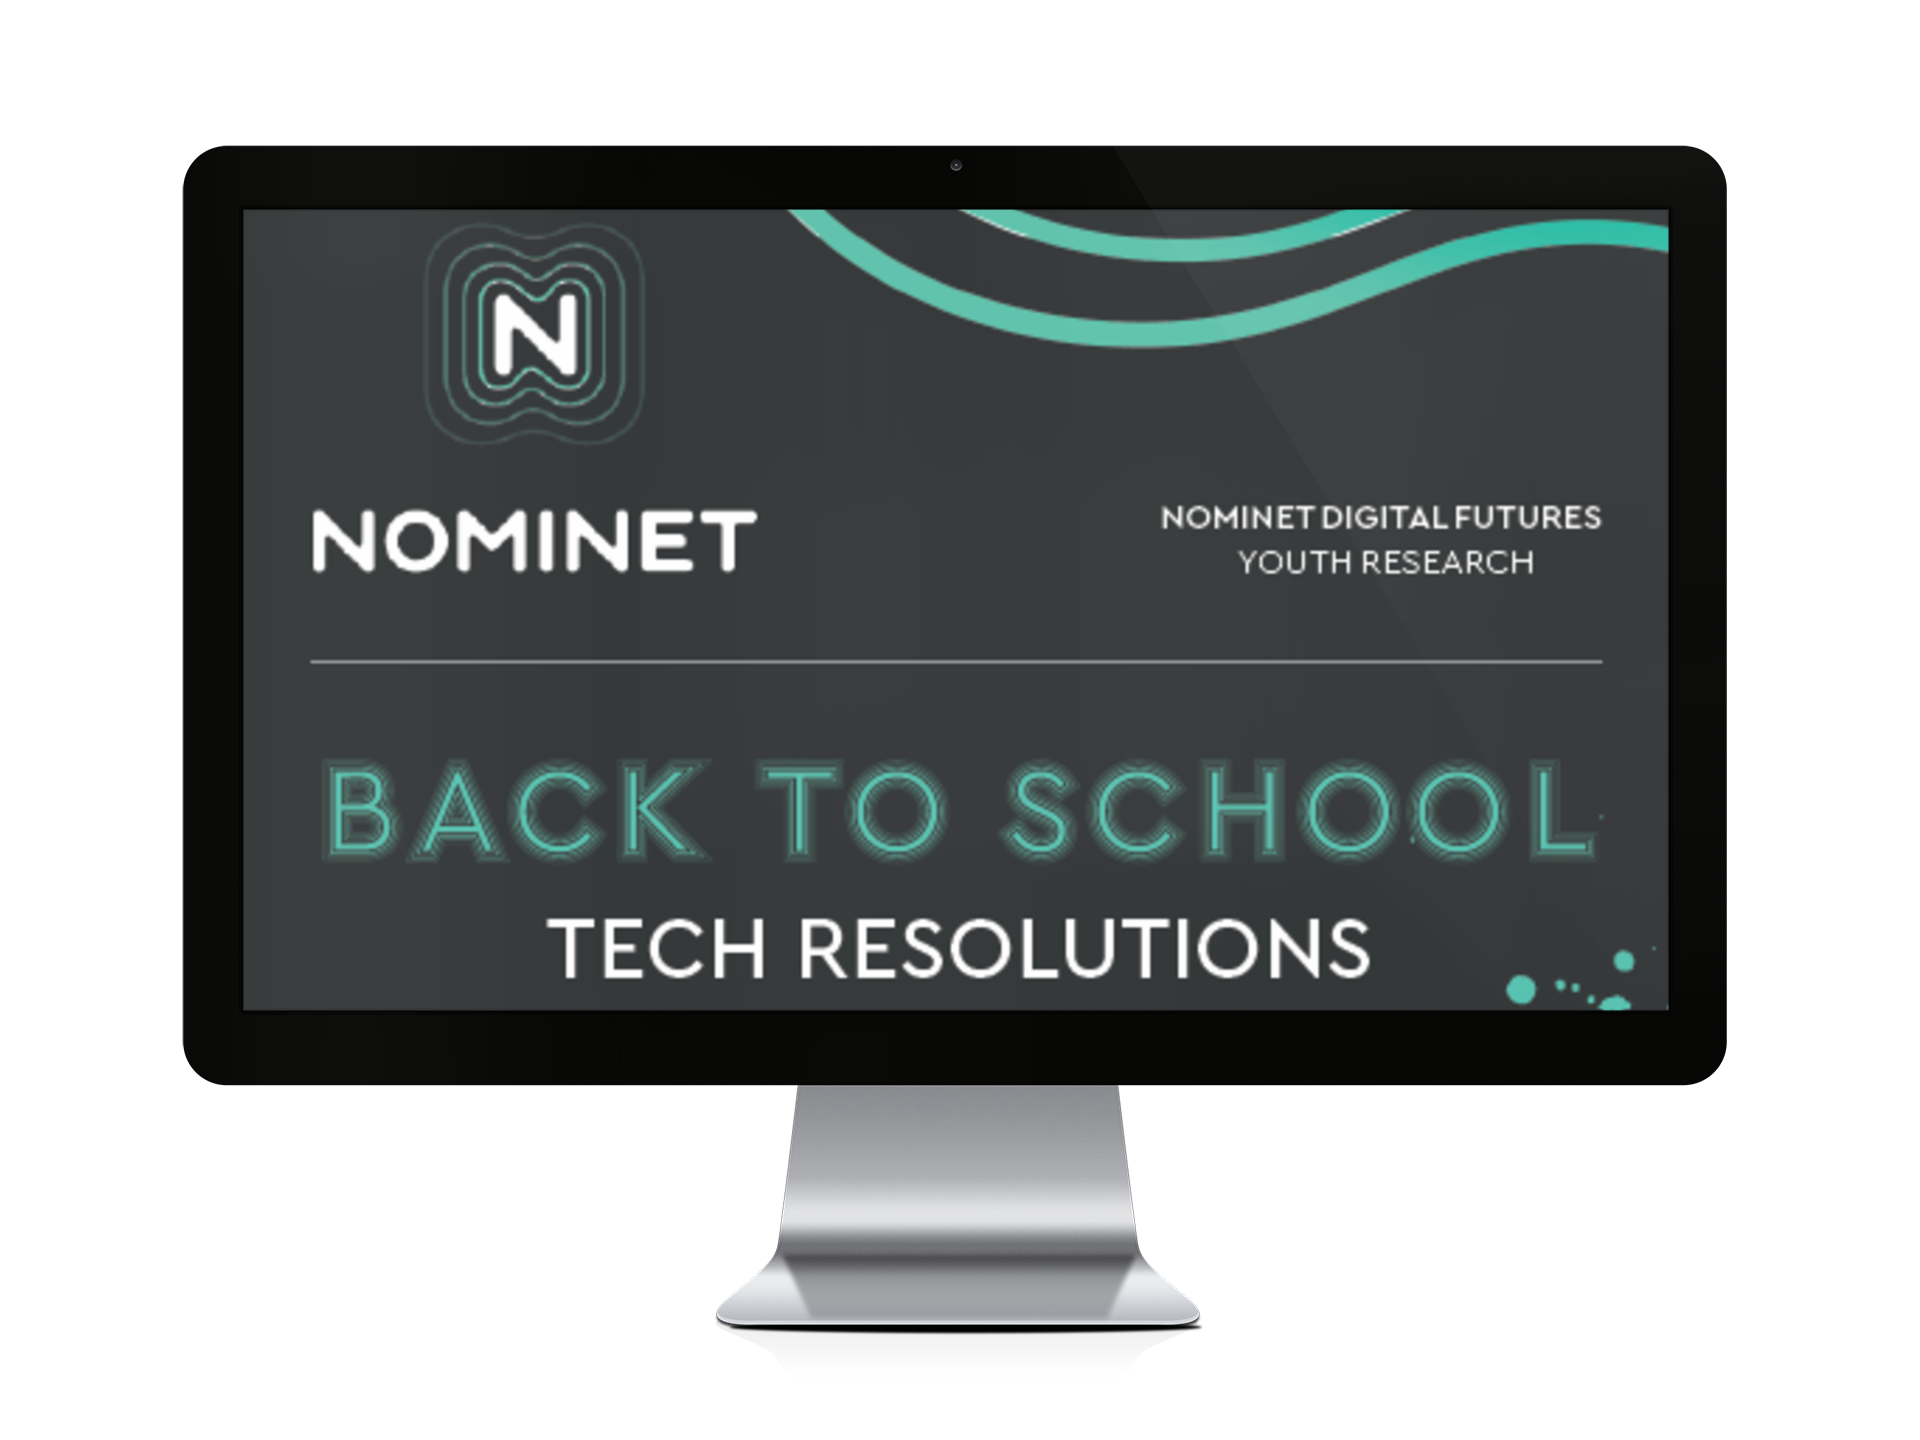 Computer monitor showing 'Back to school tech resolutions'